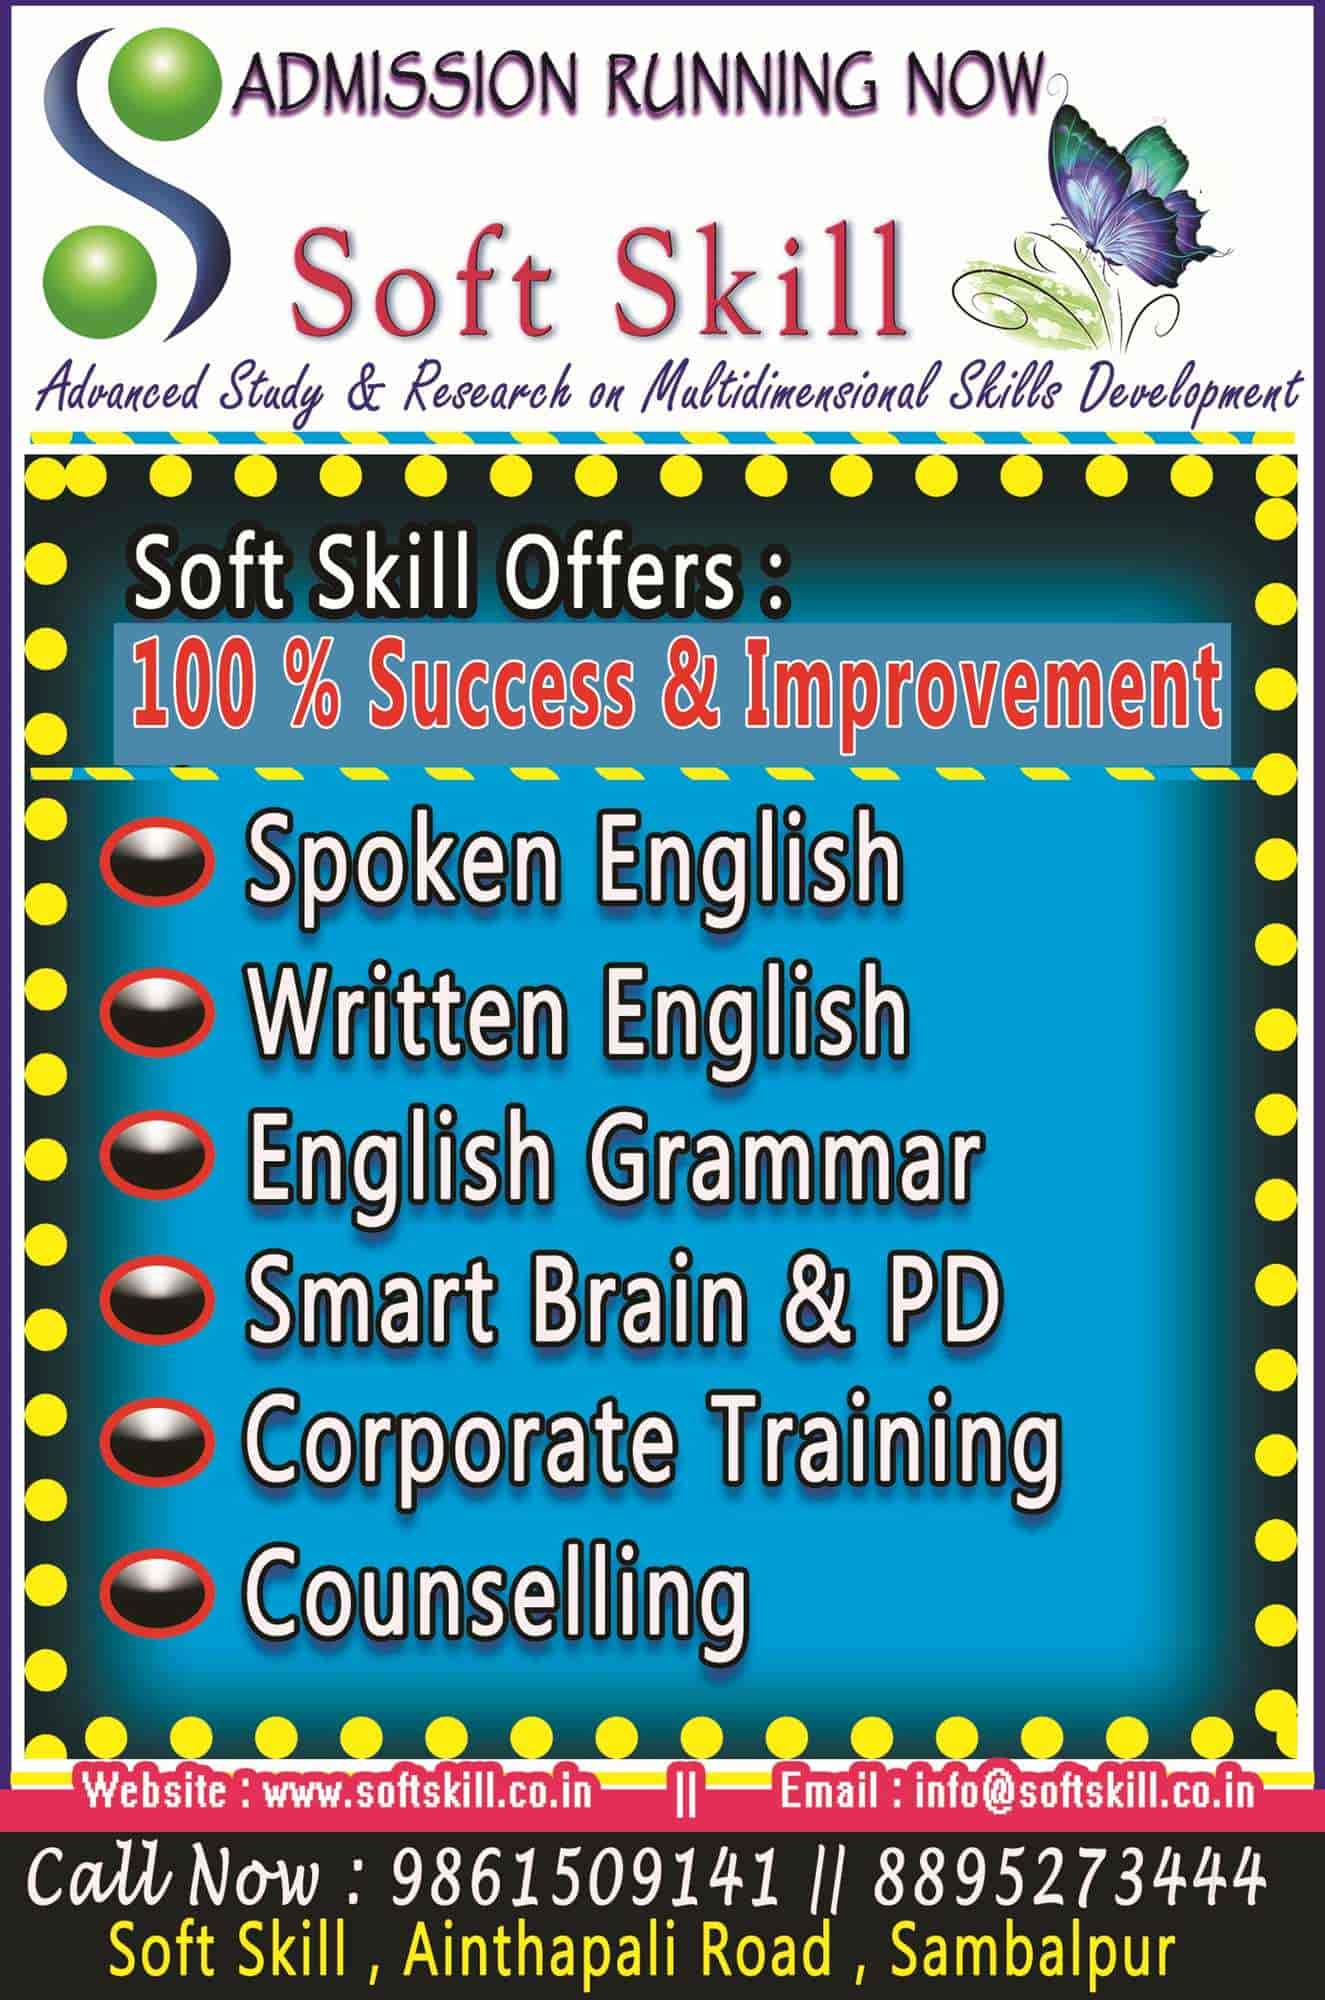 Corporate Soft Skills Pvt Ltd, Budharaja - Language Classes For